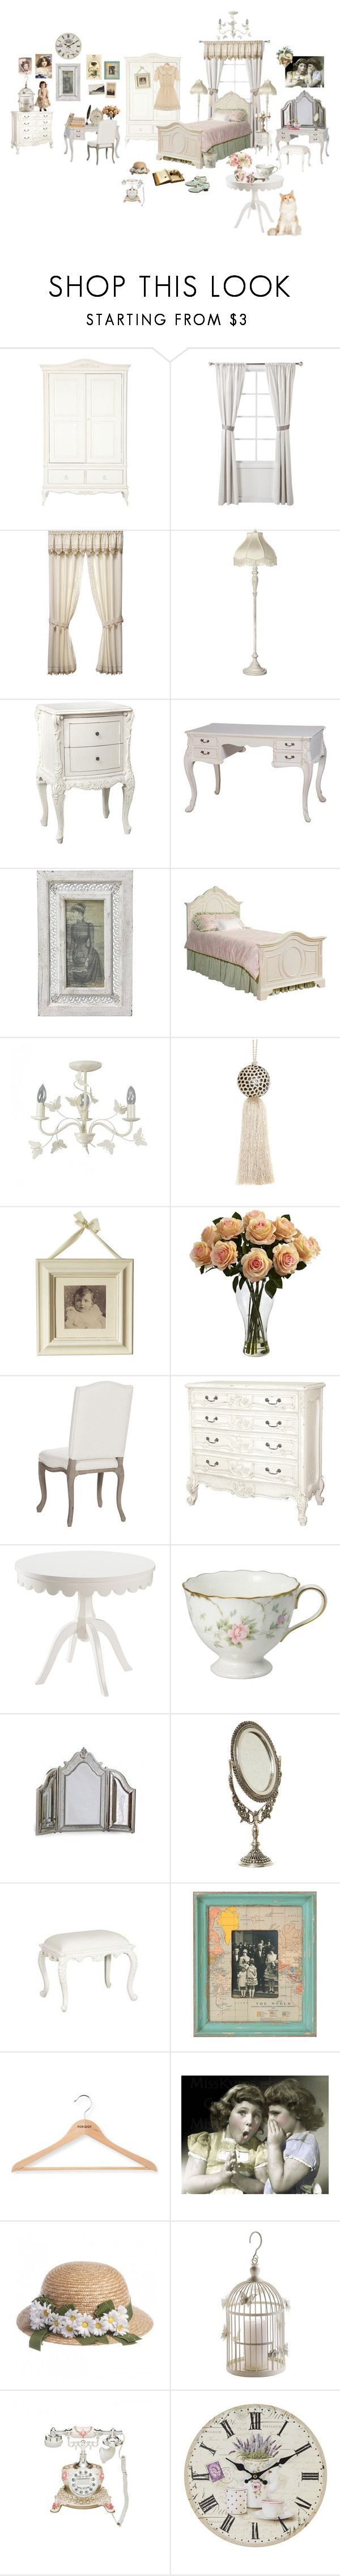 """Vintage Bedroom"" by nattindira ❤ liked on Polyvore featuring interior, interiors, interior design, home, home decor, interior decorating, Shabby Chic, Petit Tresor, Today's Curtain and Universal Lighting and Decor"